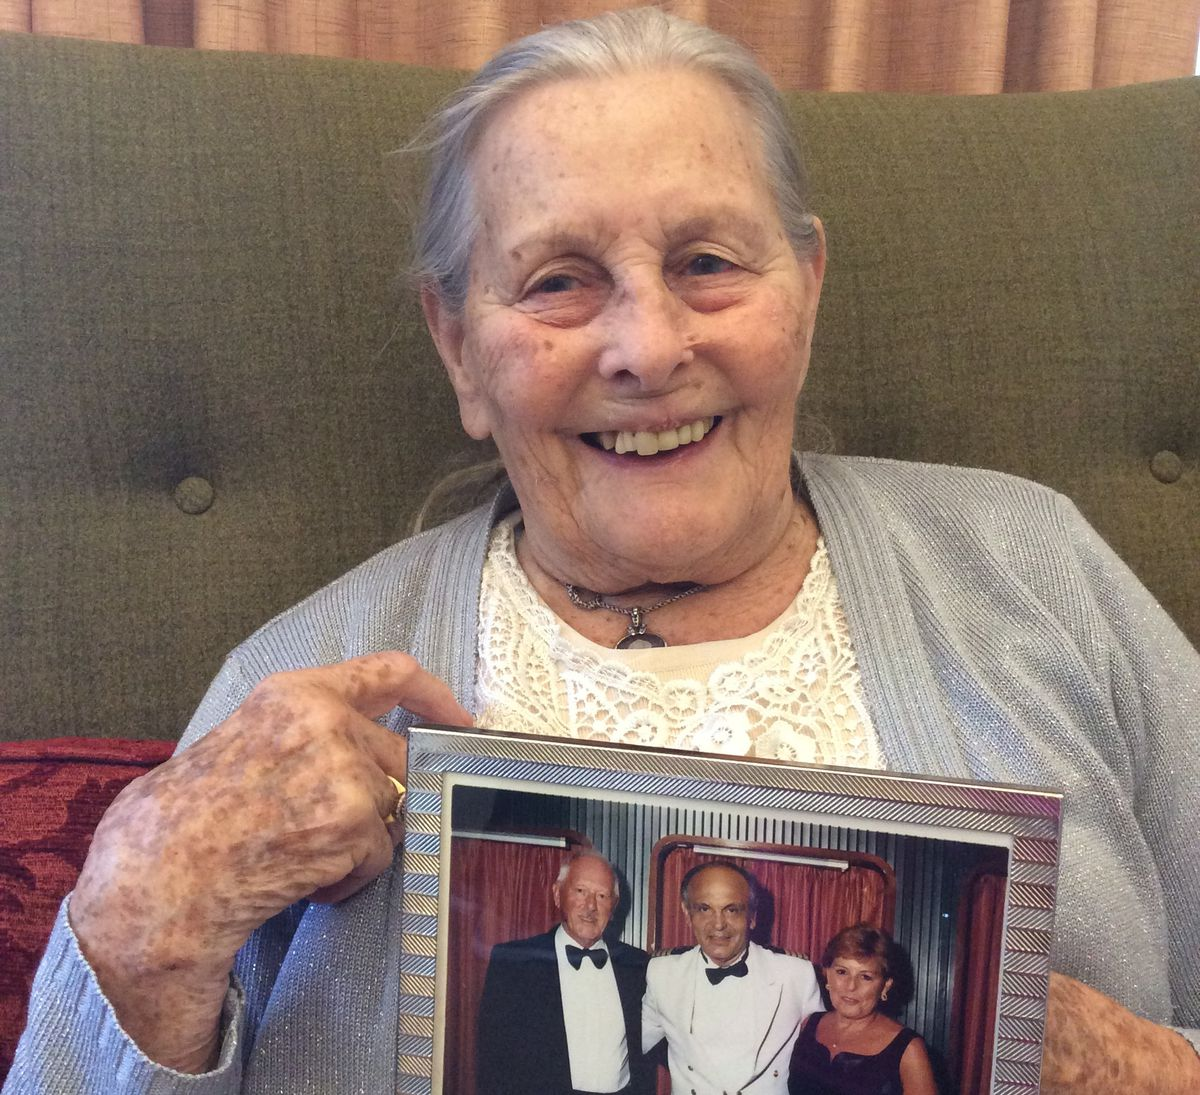 Mary Layborne keeps a photo of her late husband Eddie close to her